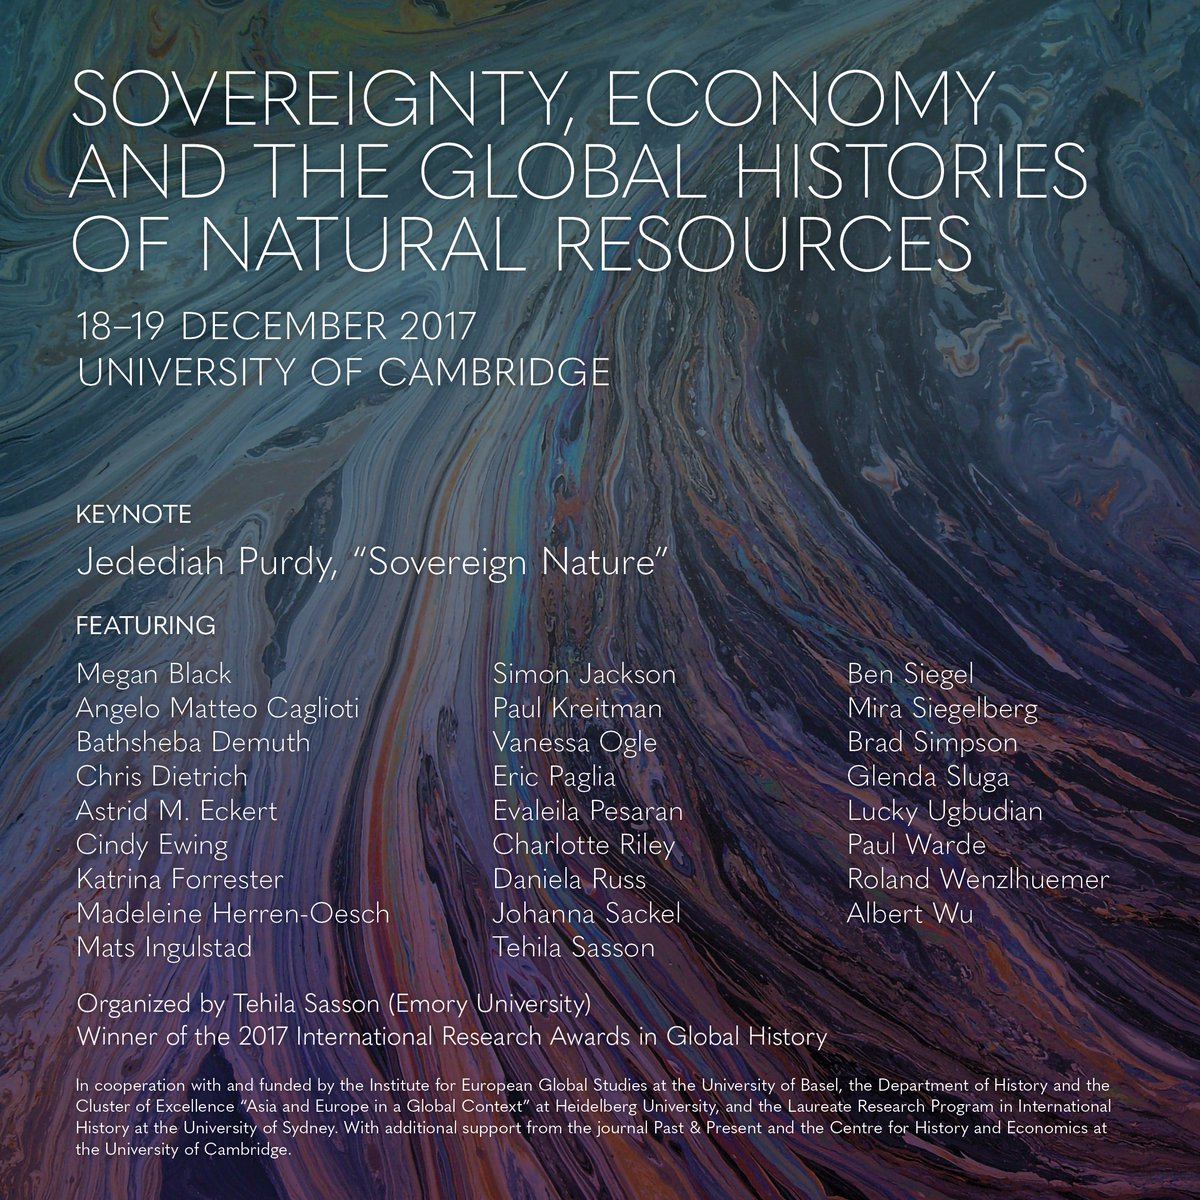 Natural Resources Conference image.jpg